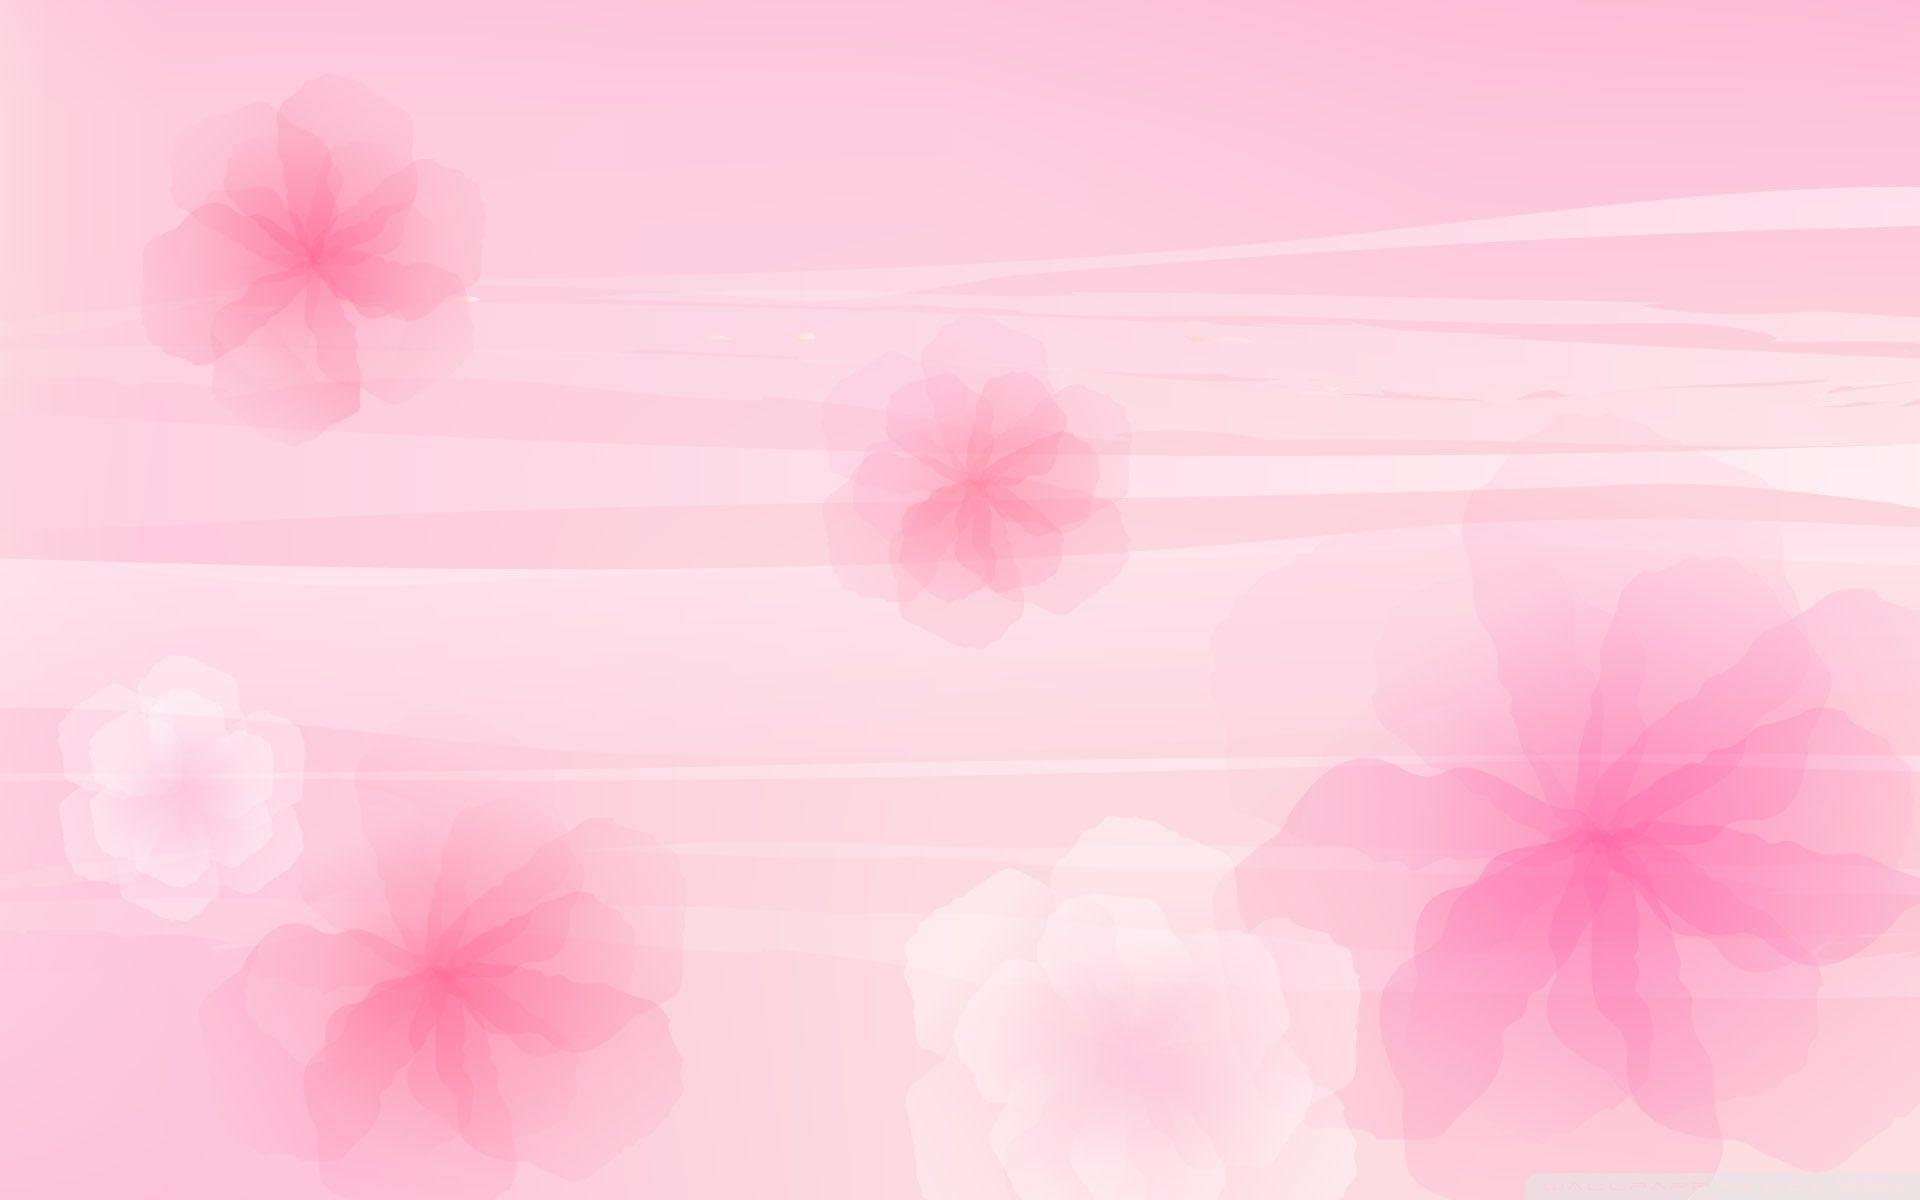 Pink Backgrounds Wallpapers 1920x1200